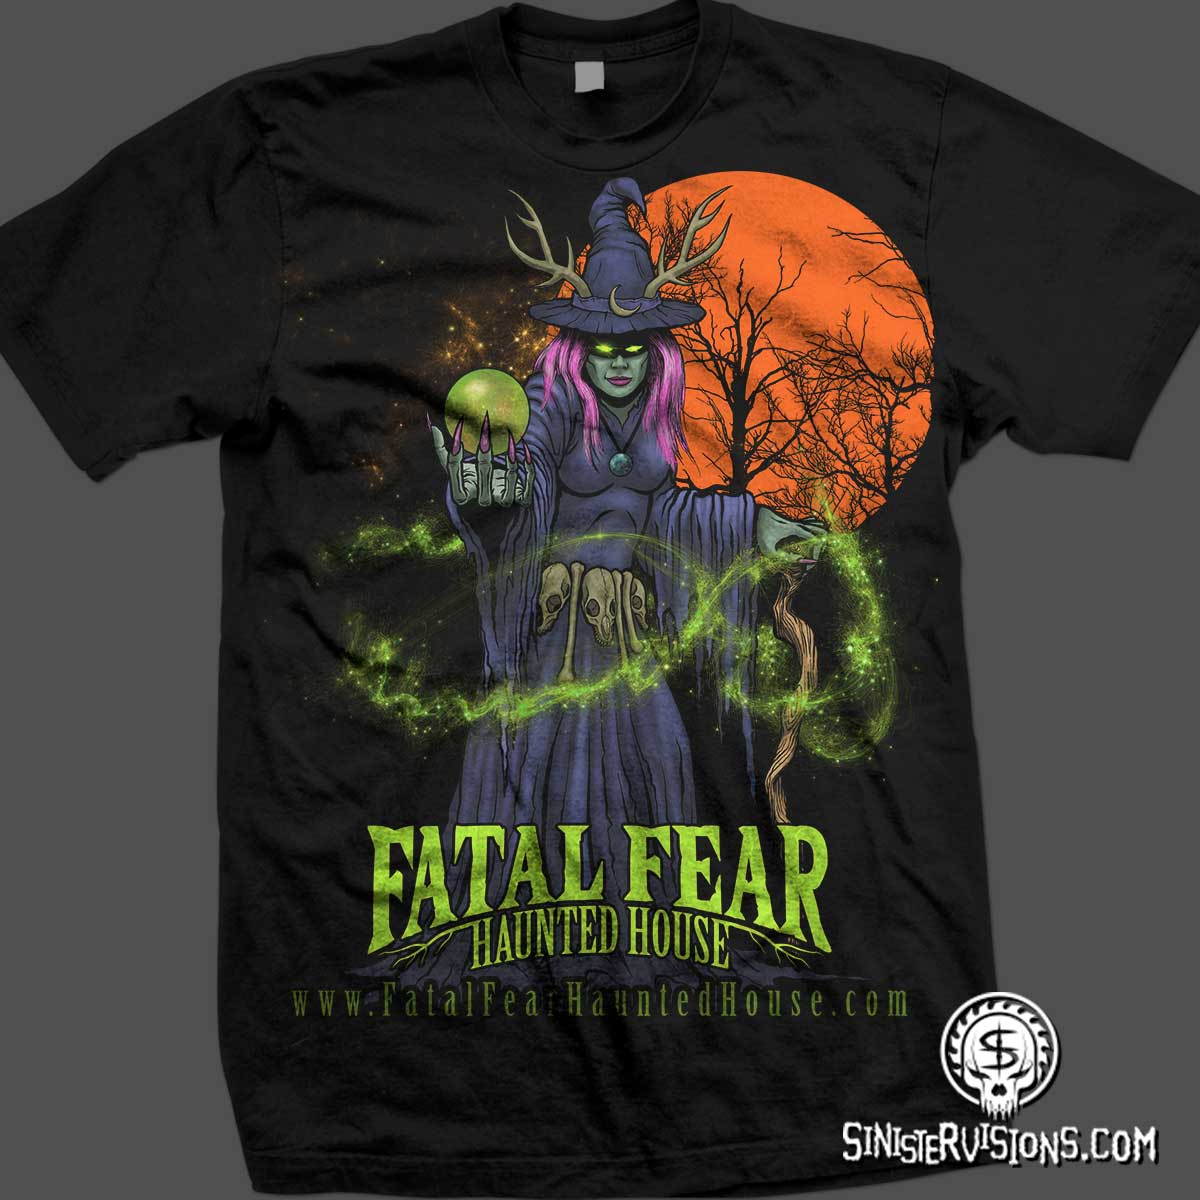 5dfbf4e99 Sinister Visions: T-shirt design for haunted houses, haunted ...